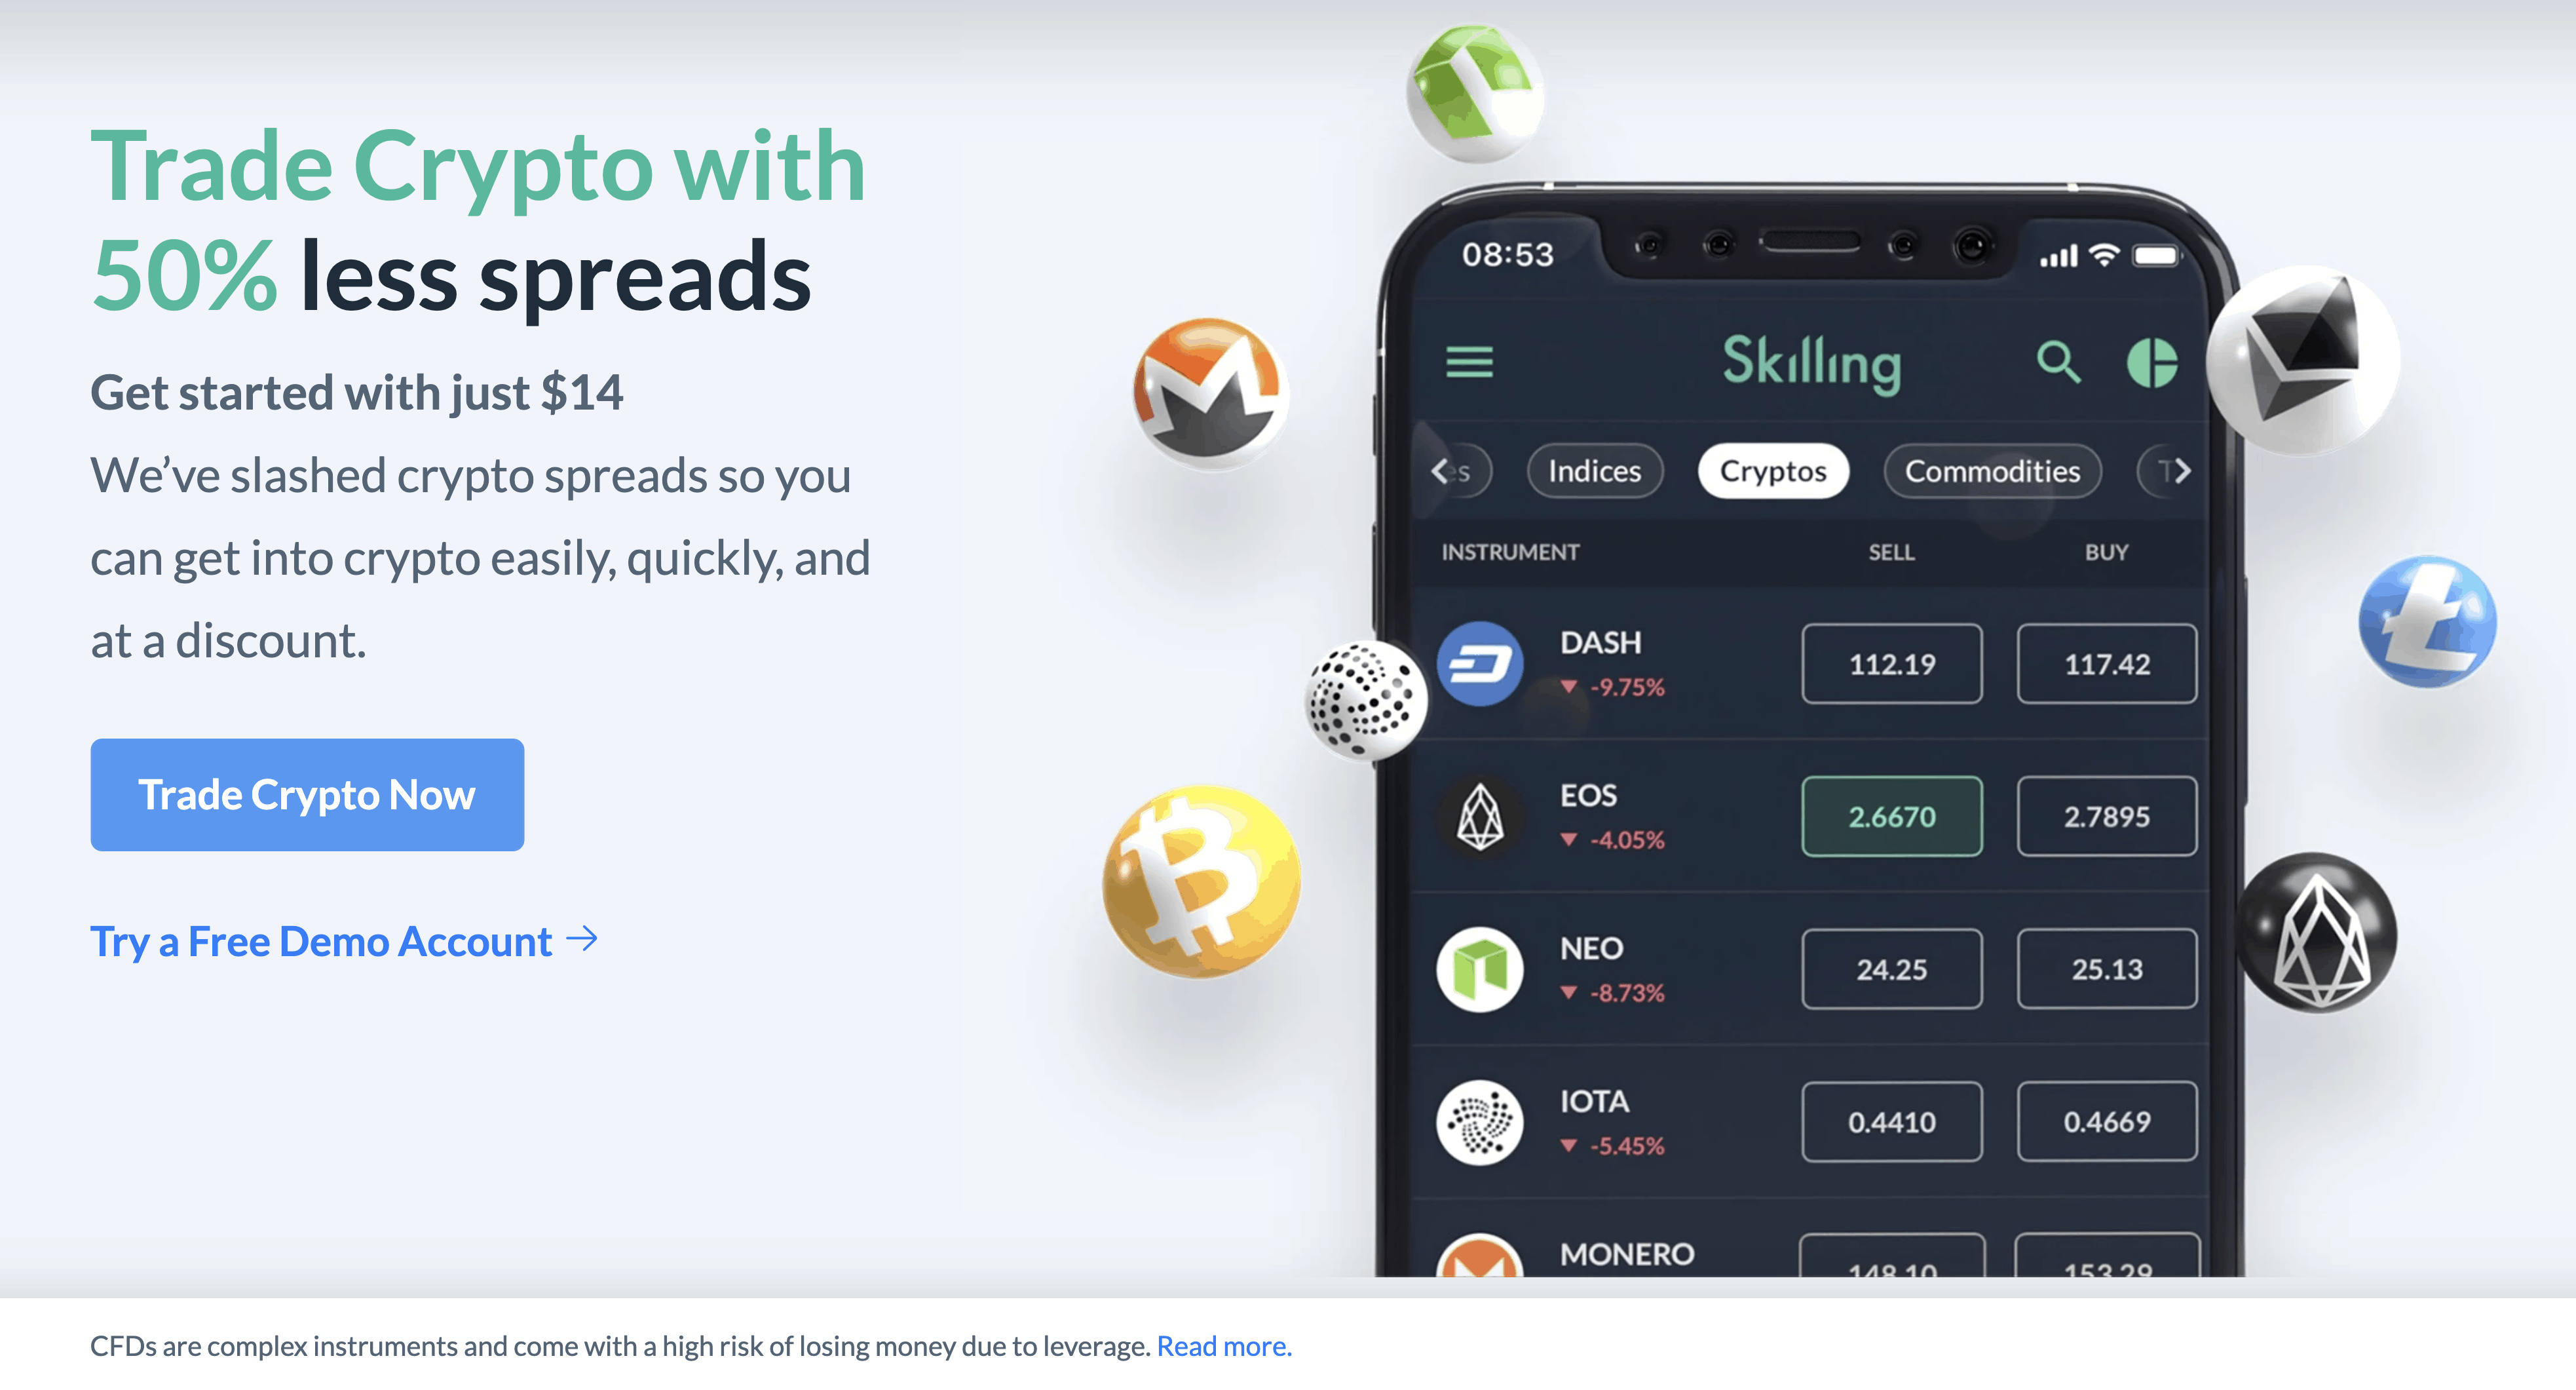 Skilling crypto on mobile with spreads